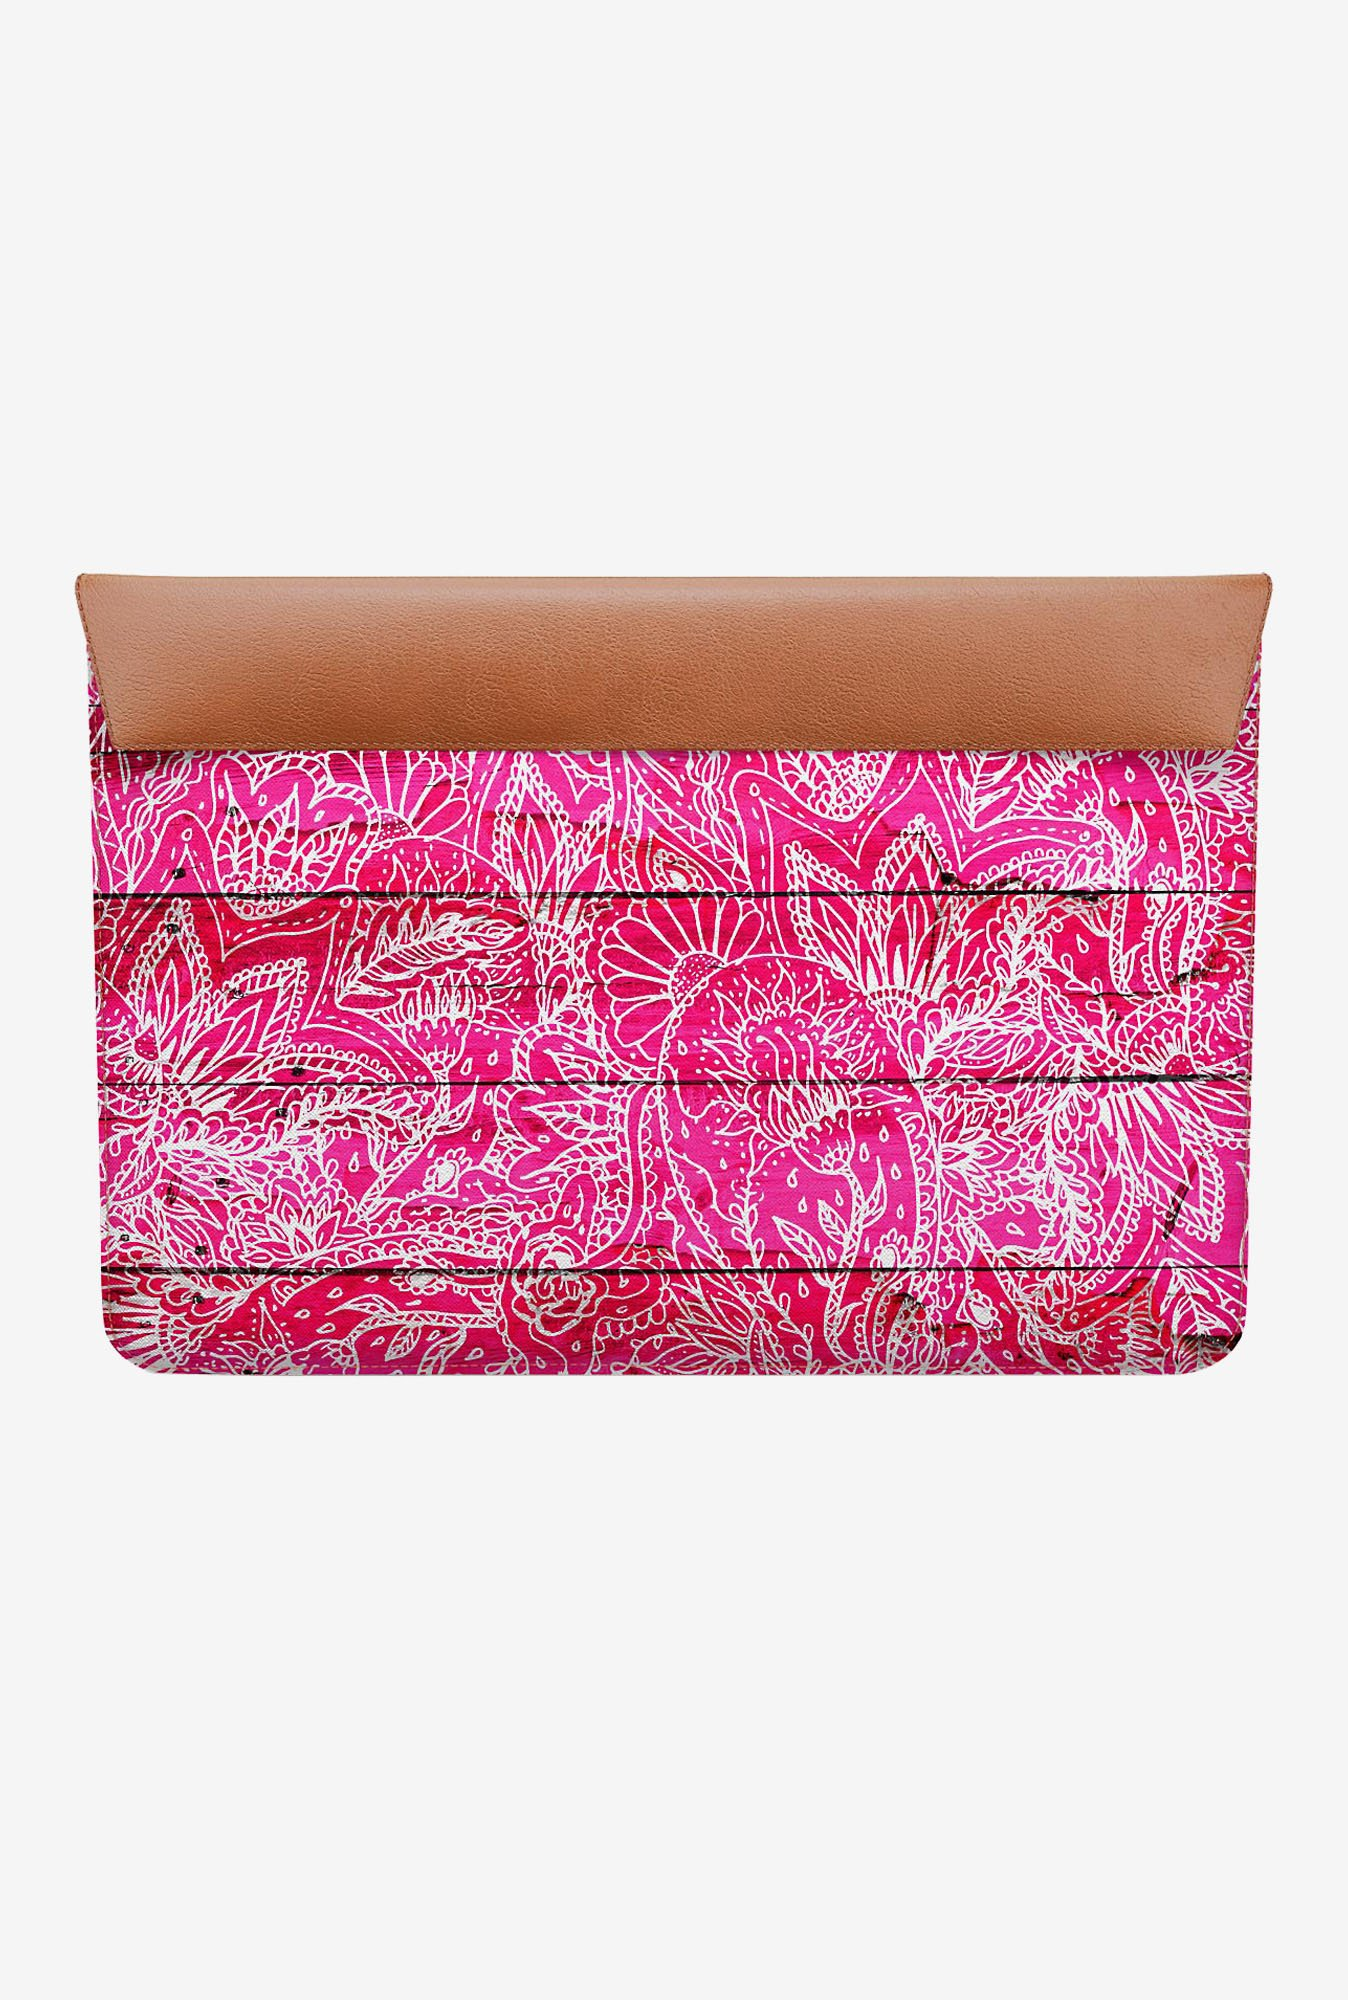 DailyObjects Floral Paisley MacBook Air 13 Envelope Sleeve